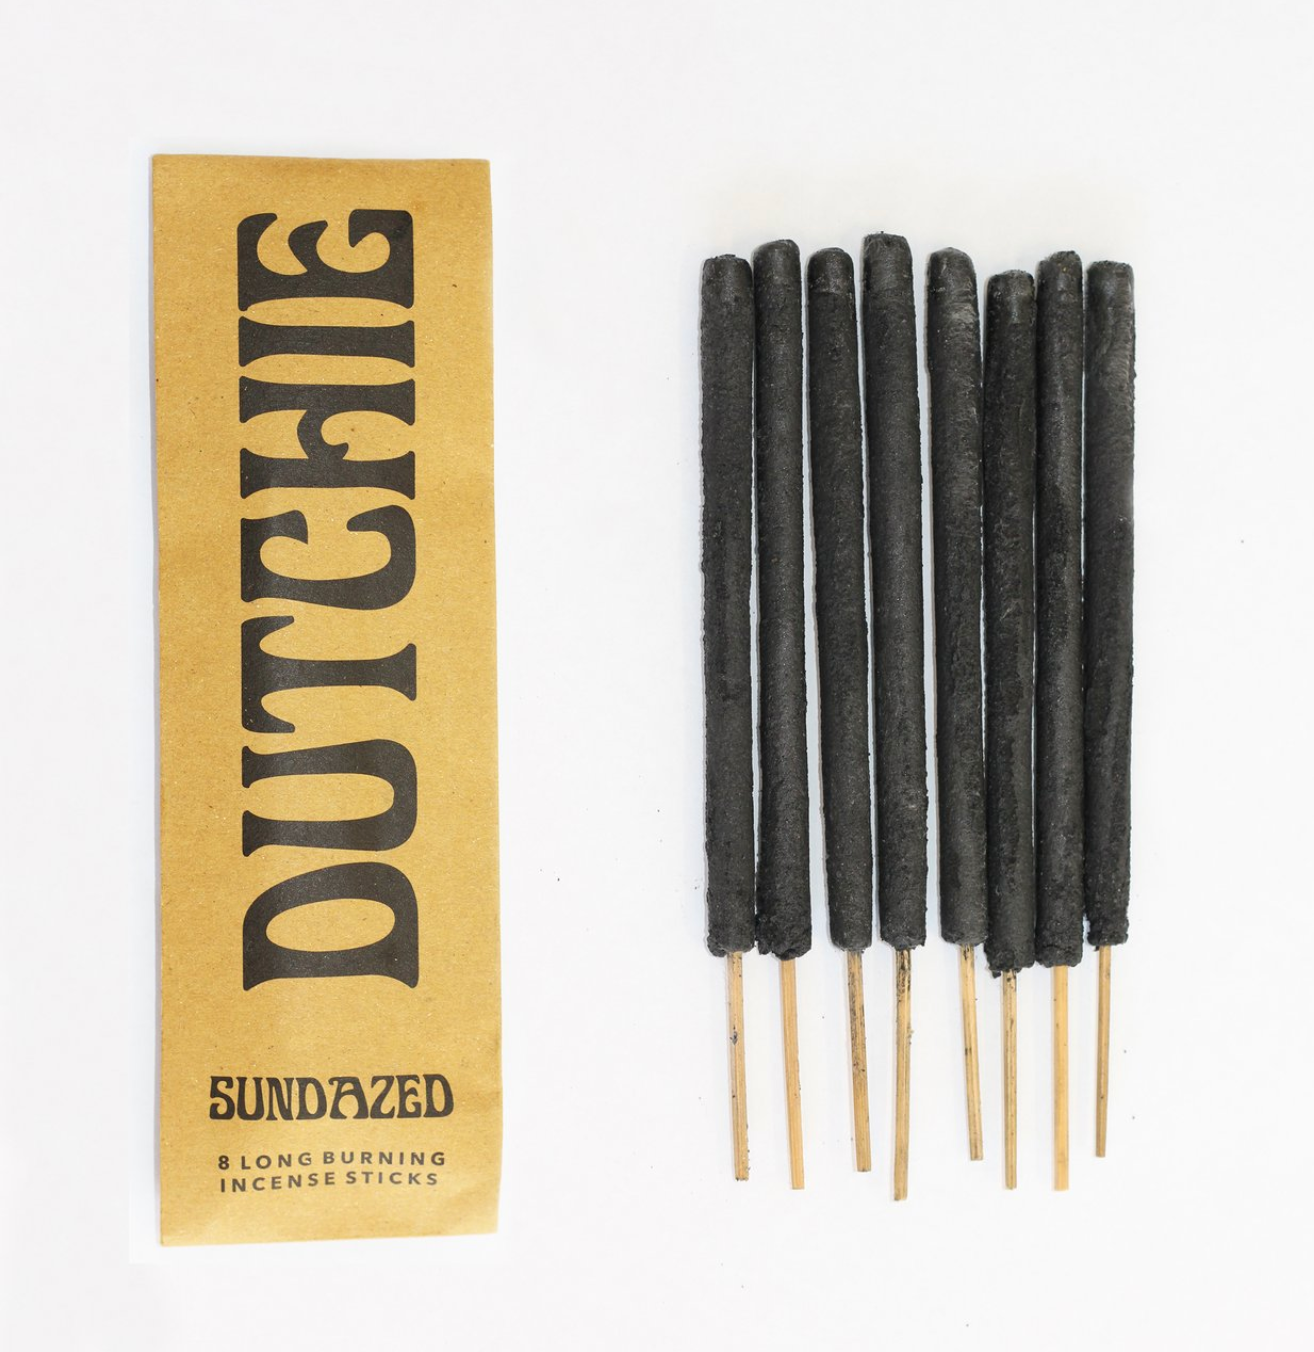 Sundazed incense sticks